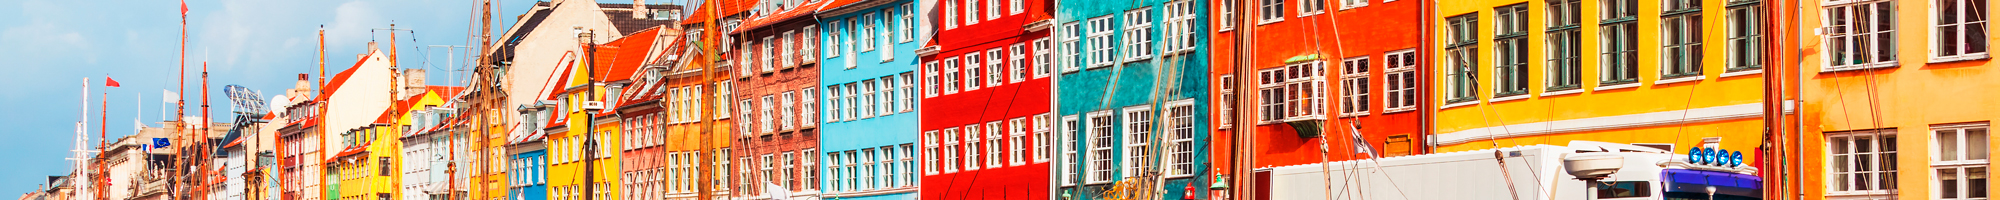 Hostels y Albergues en Copenhague